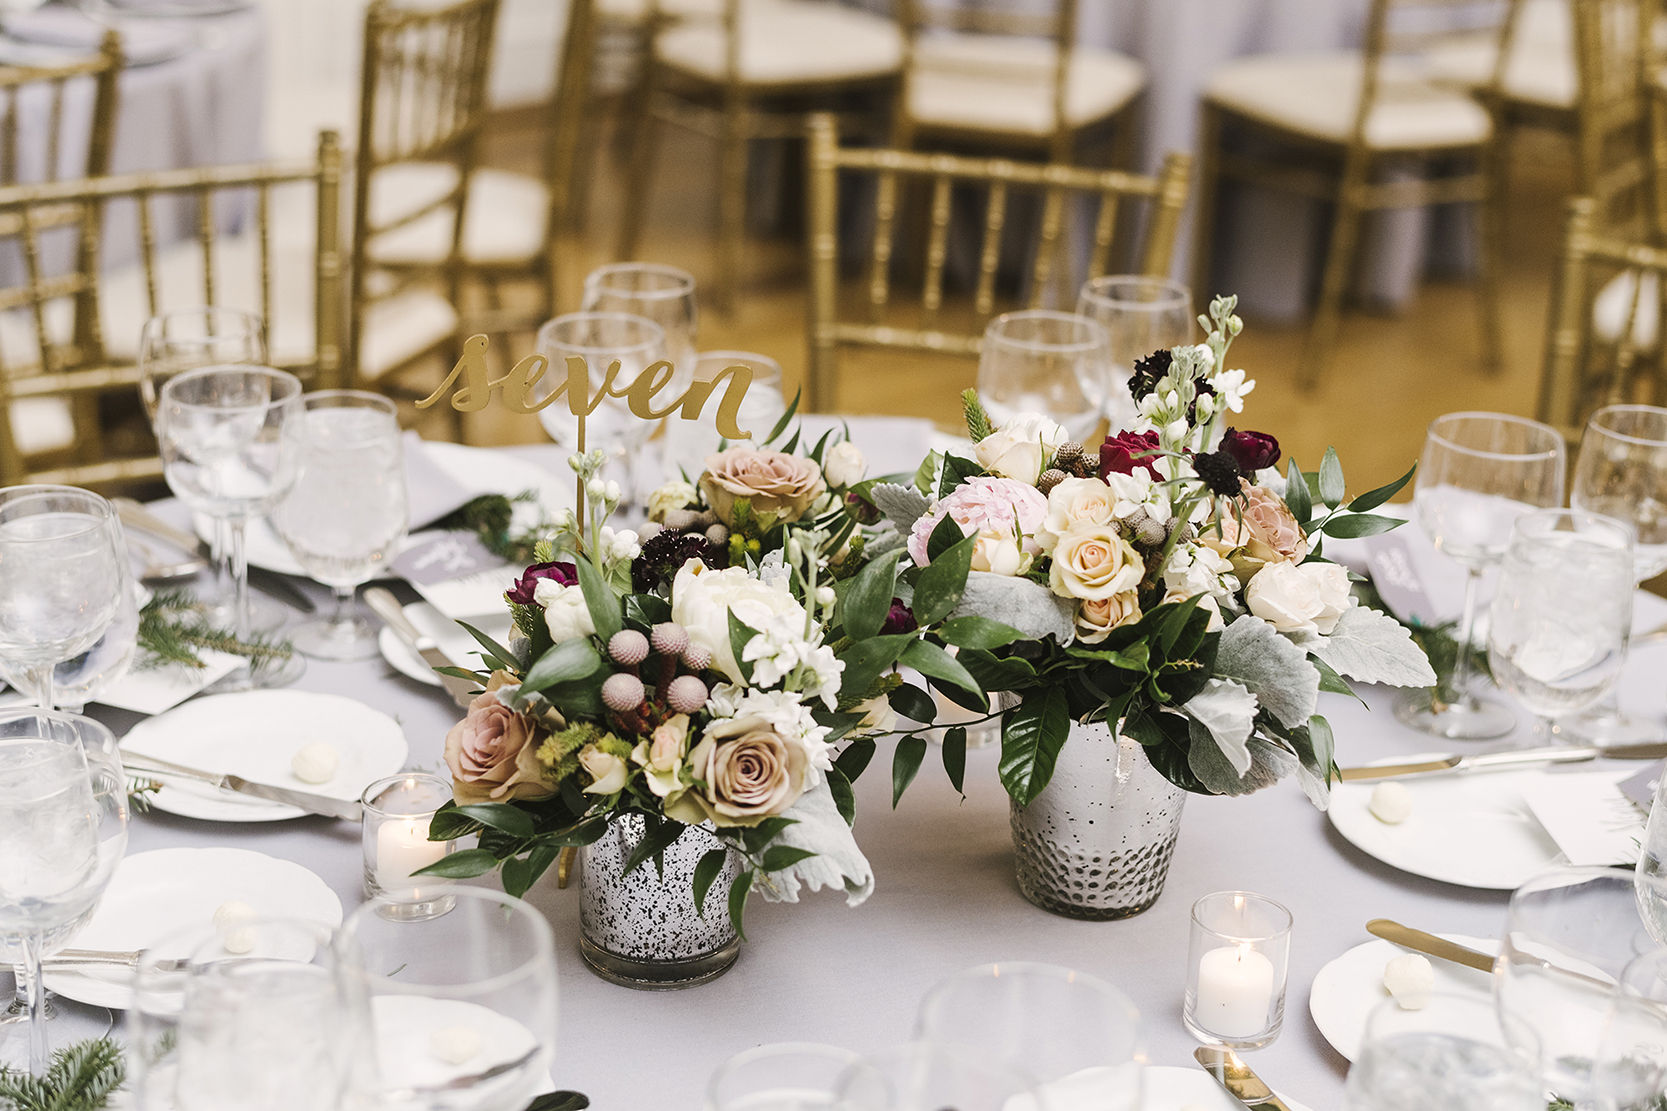 Floral Arrangements and Decor Advice | by Bride & Blossom, NYC's Only  Luxury Wedding Florist -- Wedding Ideas, Tips and Trends for the Modern,  Sophisticated Bride